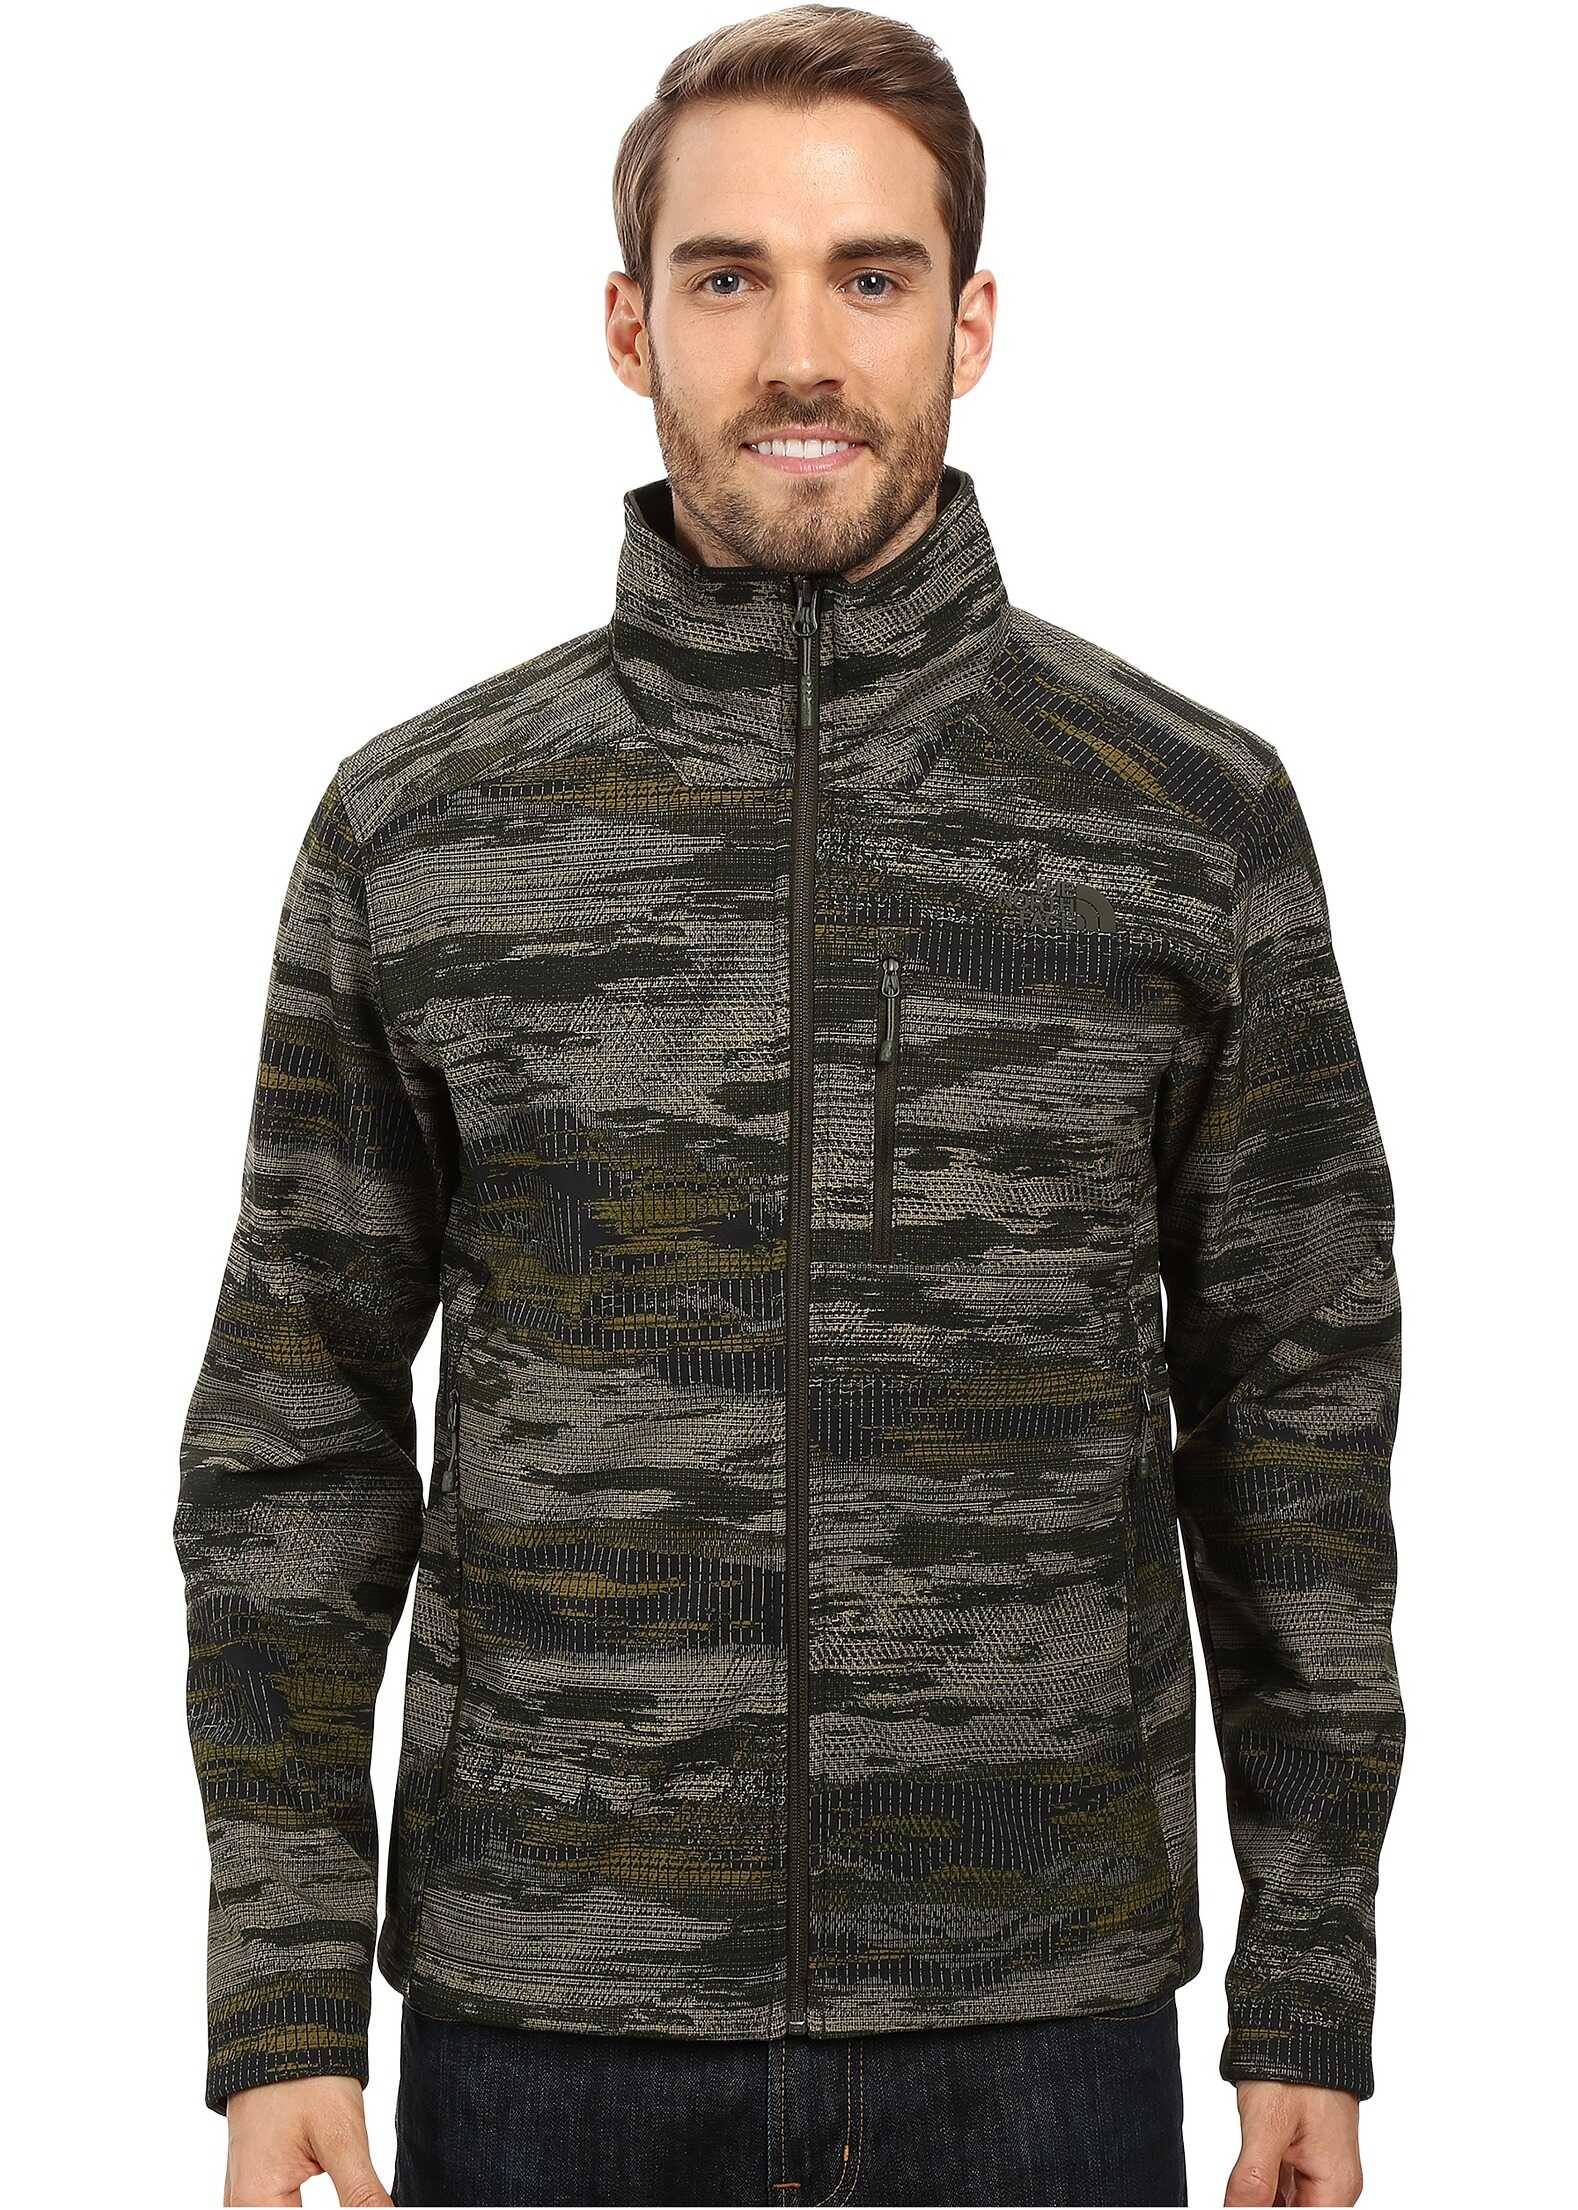 The North Face Apex Bionic 2 Jacket Rosin Green Glamo Print (Prior Season)